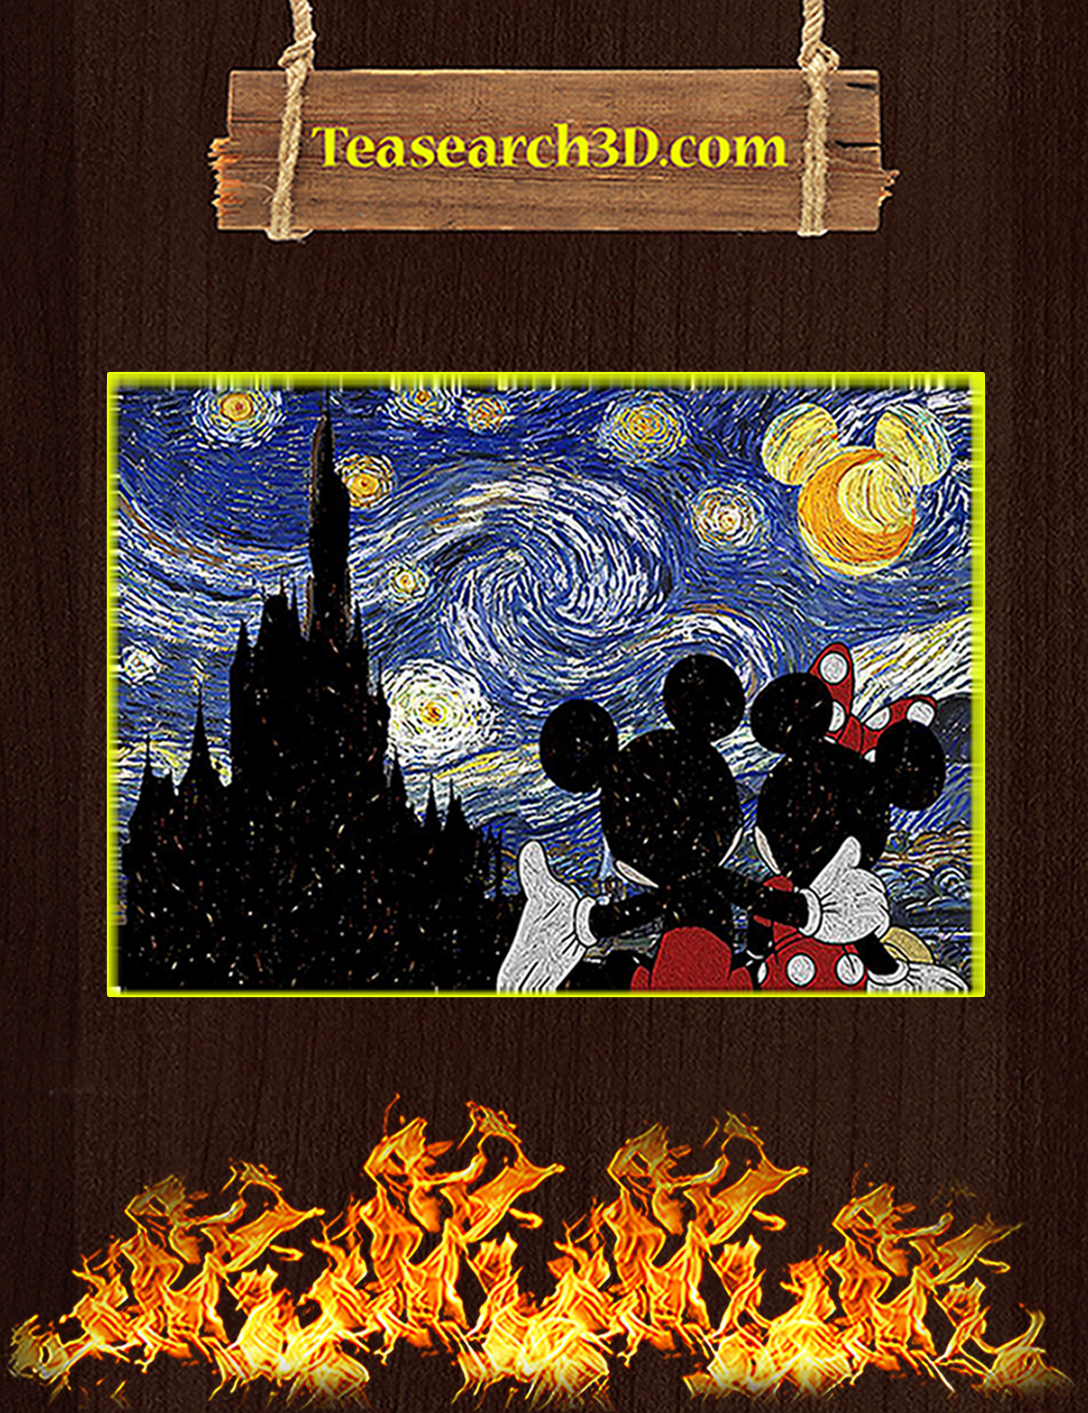 Mickey and minnie starry night poster A2